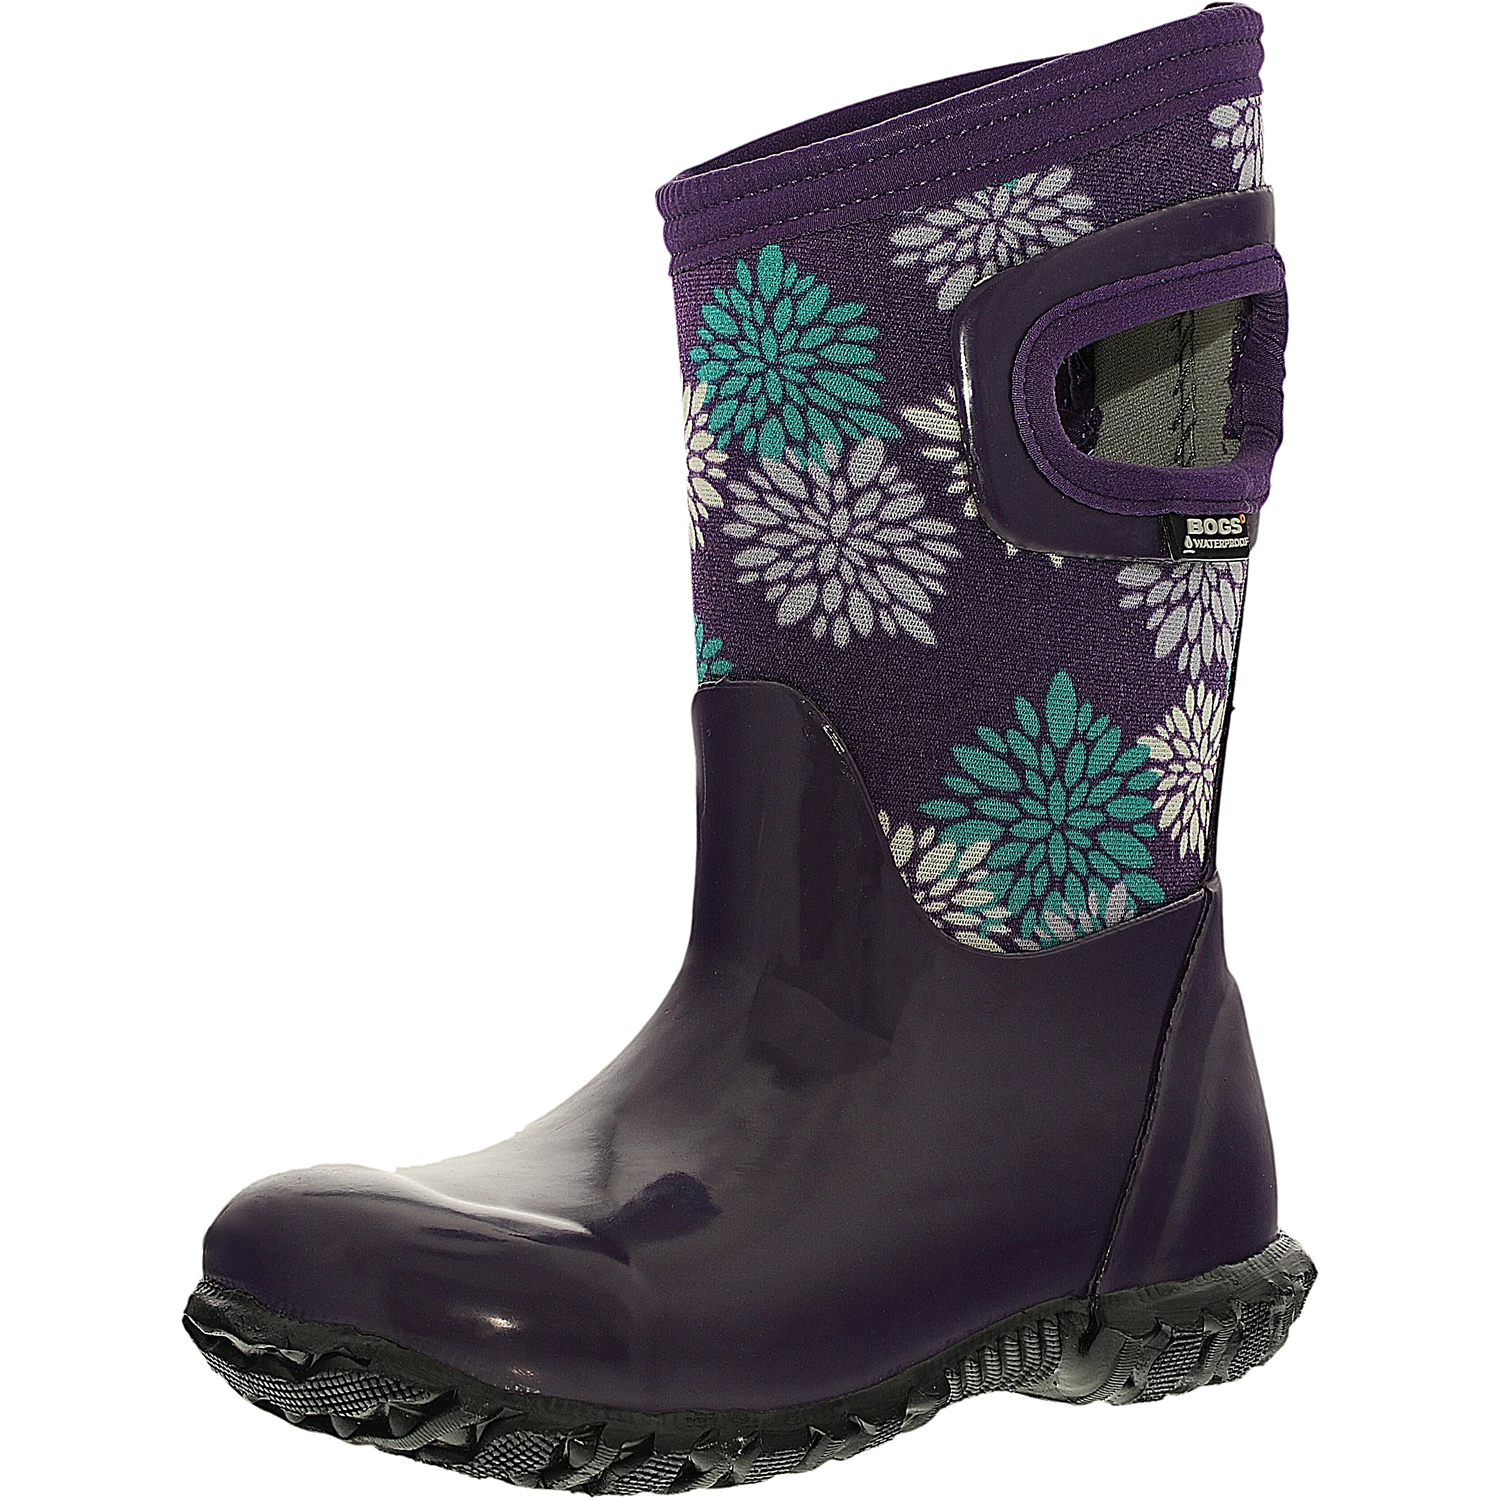 Bogs Girl's North Hampton Pompons Rubber Grape Multi Ankle-High Rubber Boot - 9M